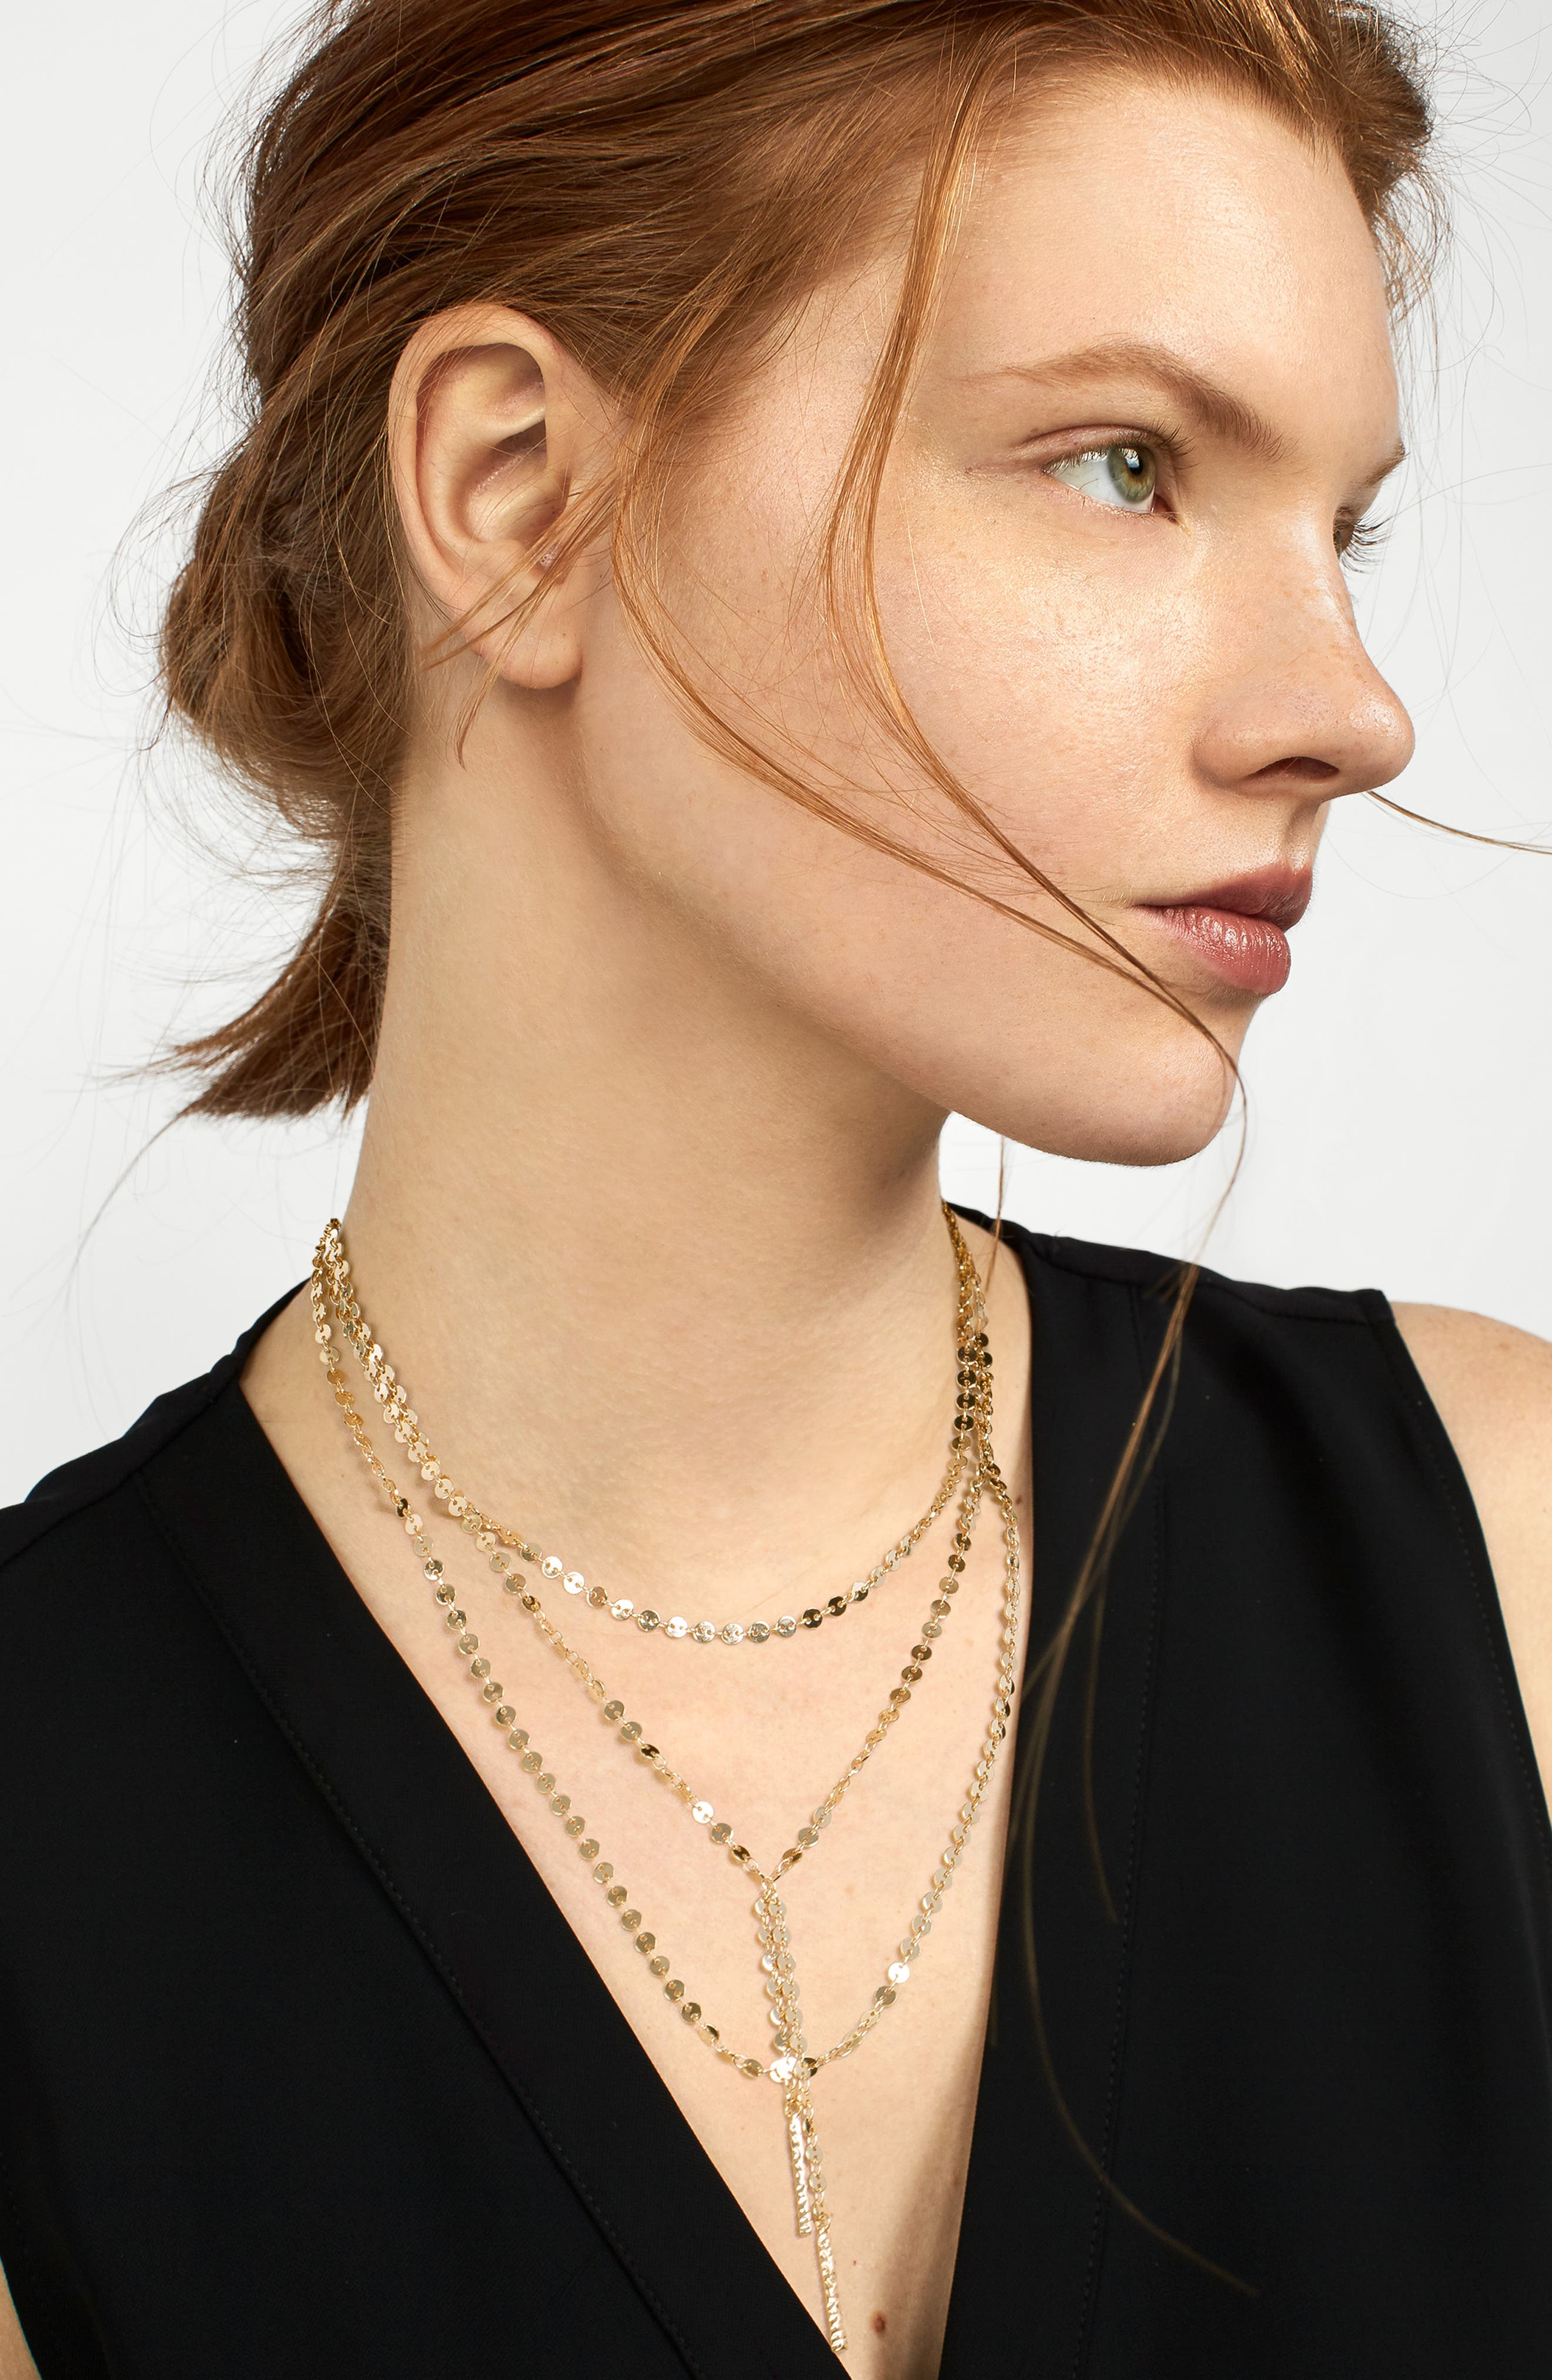 BAUBLEBAR, Amber Layered Chain Y-Necklace, Alternate thumbnail 3, color, GOLD